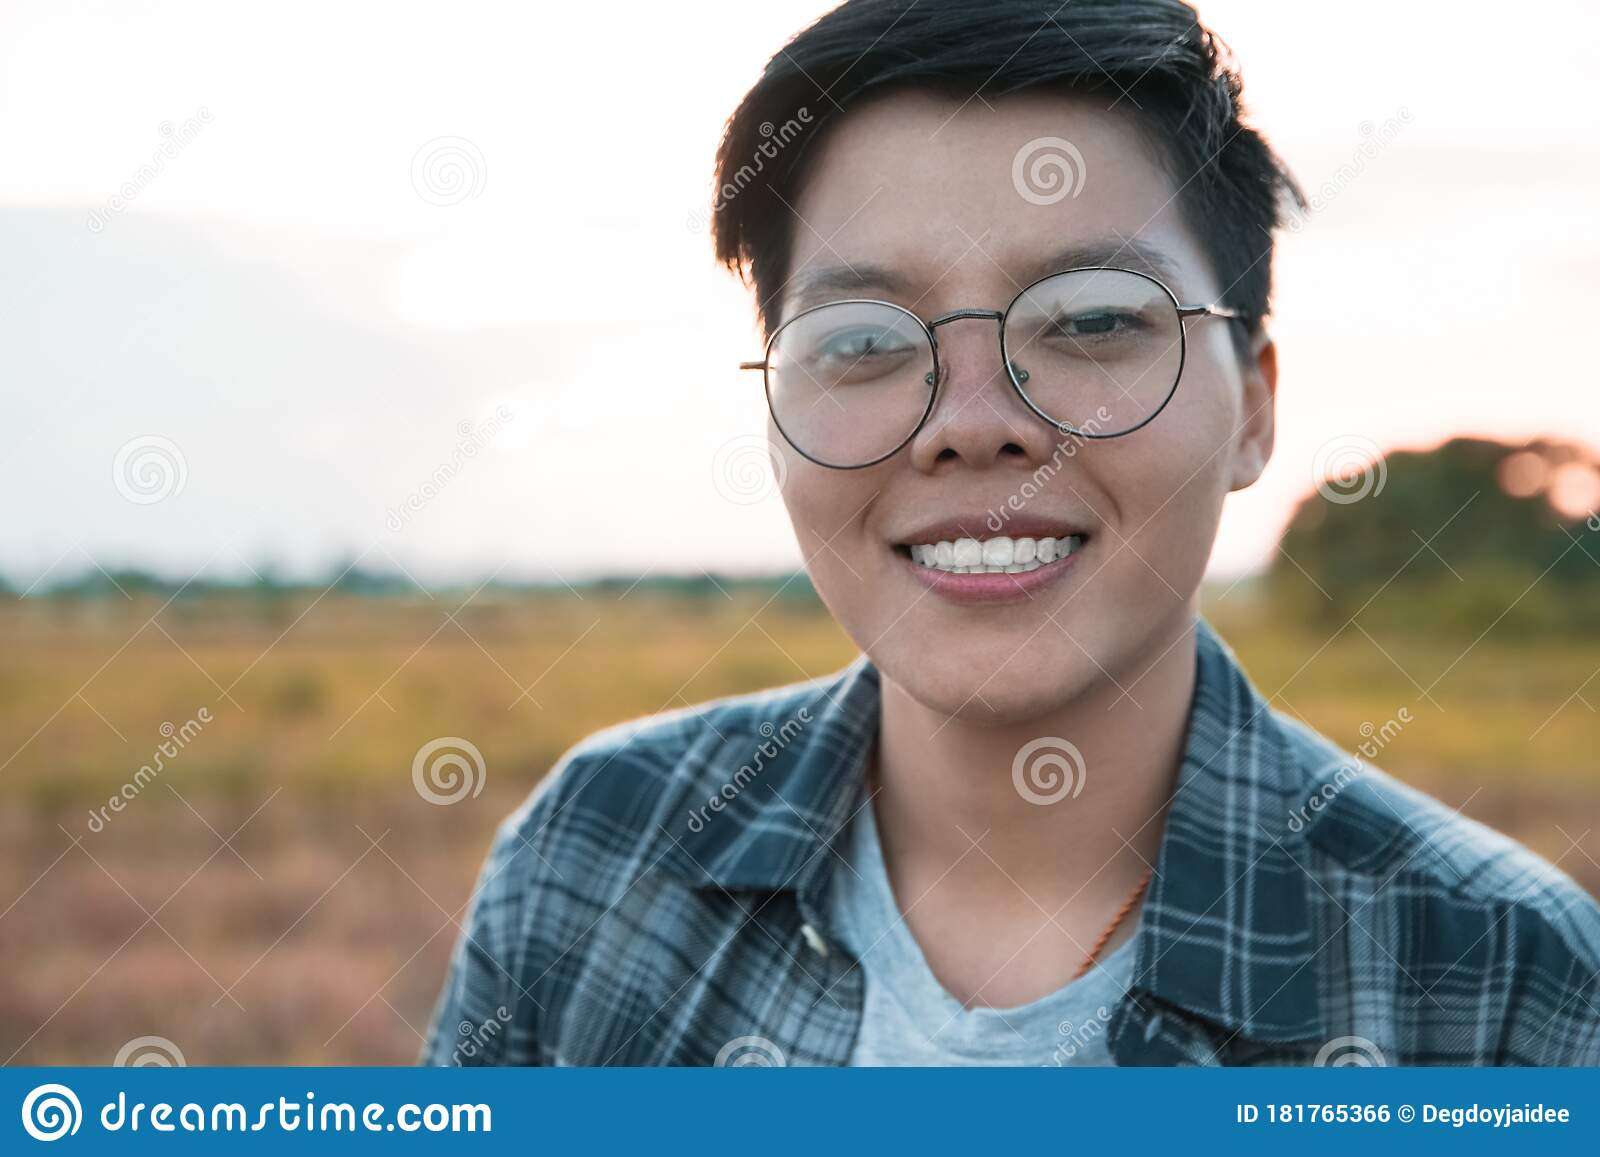 Smiling Asian Women Are Short Hair In Eyeglasses Standing On The Field Only One Portrait Lesbian Stock Photo Image Of Hairstyle Eyes 181765366